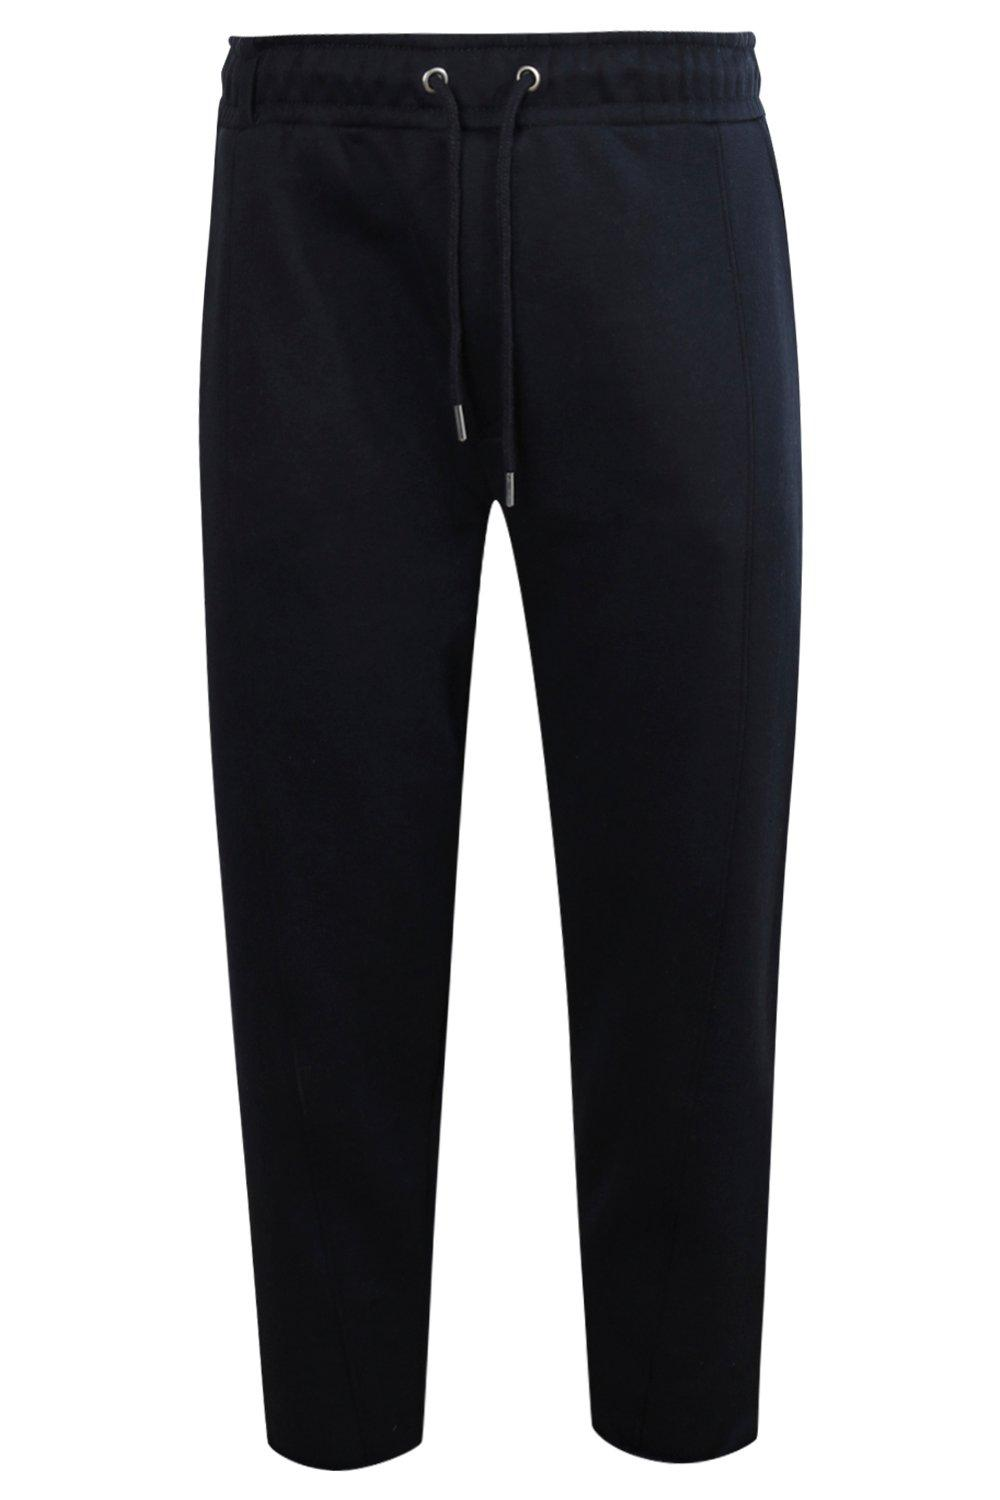 boohooMAN navy Cropped Slim Jogger With Turn Ups And Tab Detail